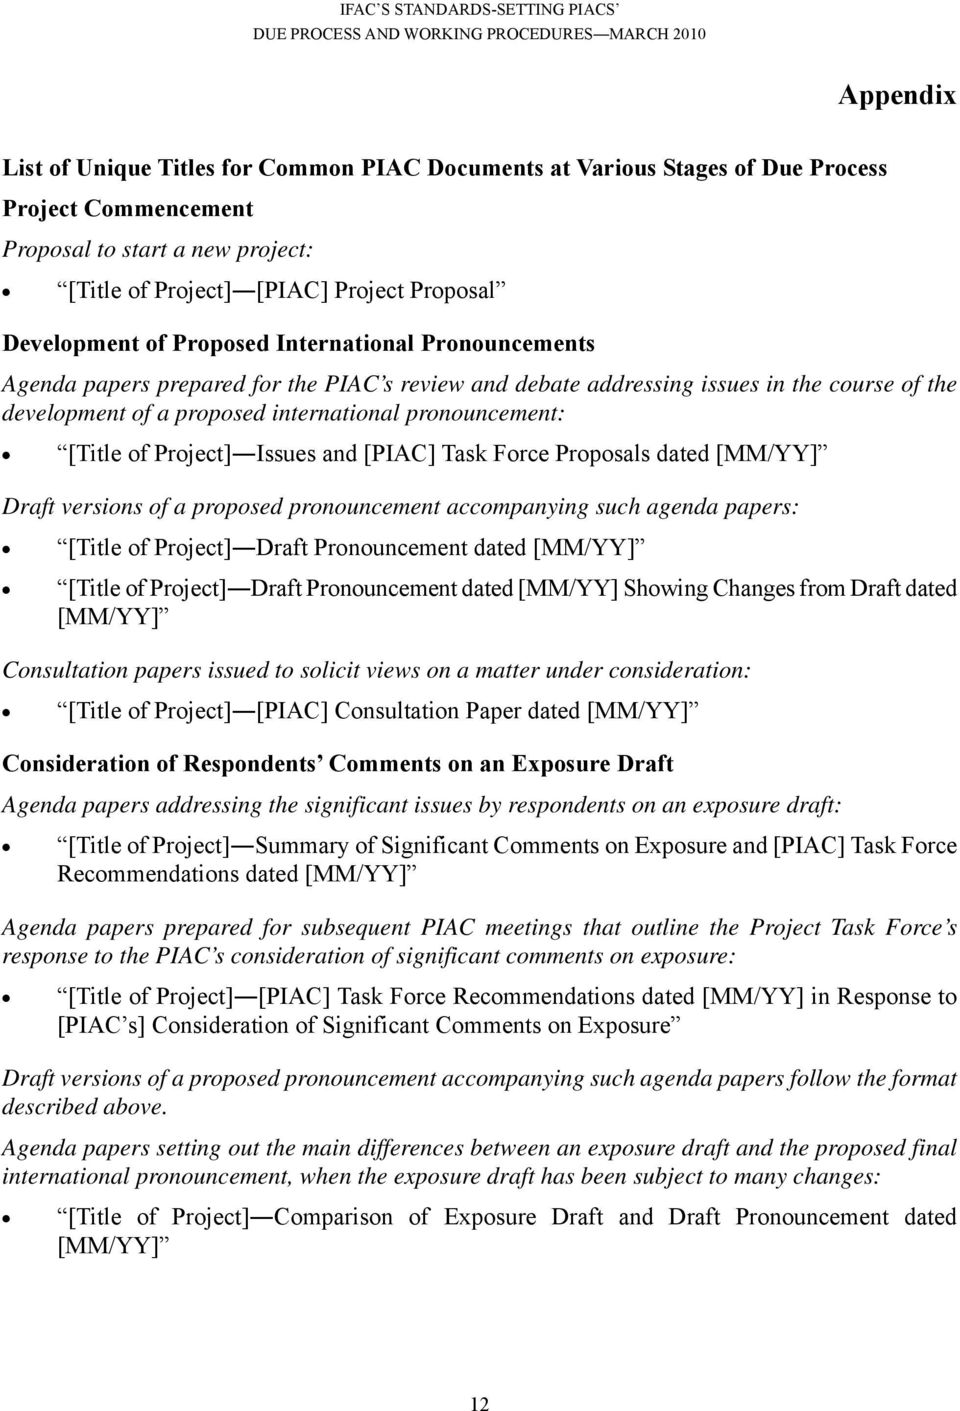 of Project] Issues and [PIAC] Task Force Proposals dated [MM/YY] Draft versions of a proposed pronouncement accompanying such agenda papers: [Title of Project] Draft Pronouncement dated [MM/YY]